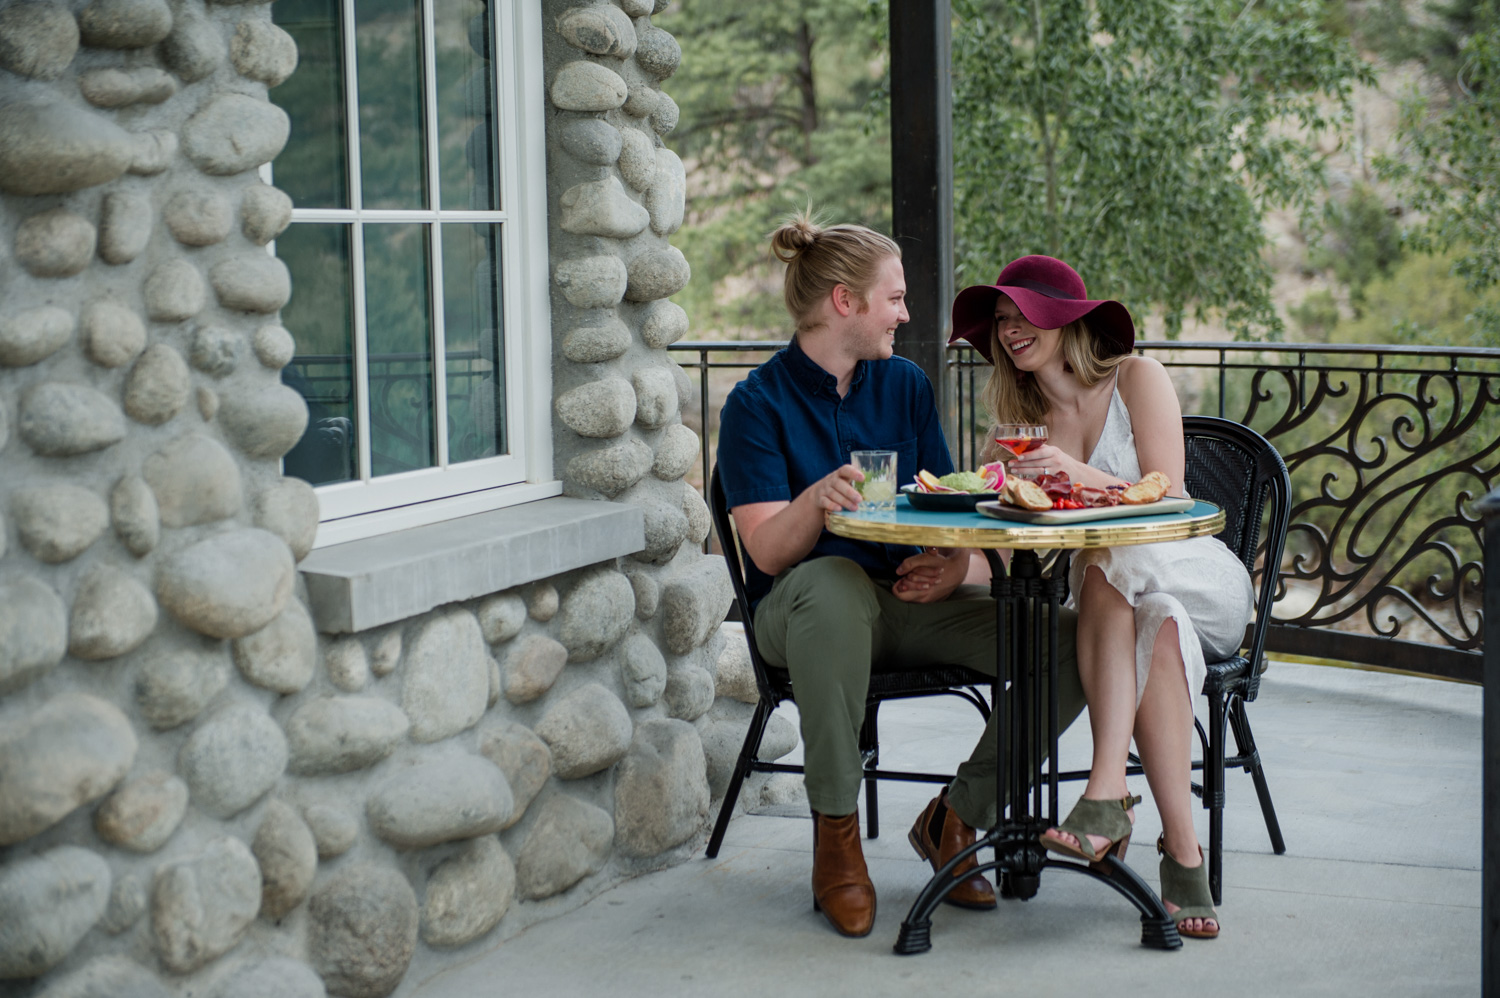 surf-hotel-chateau-buena-vista-contemporary-colorado-boutique-hotel-date-night-special-package-dinner-wesley-and-rose-special-offers